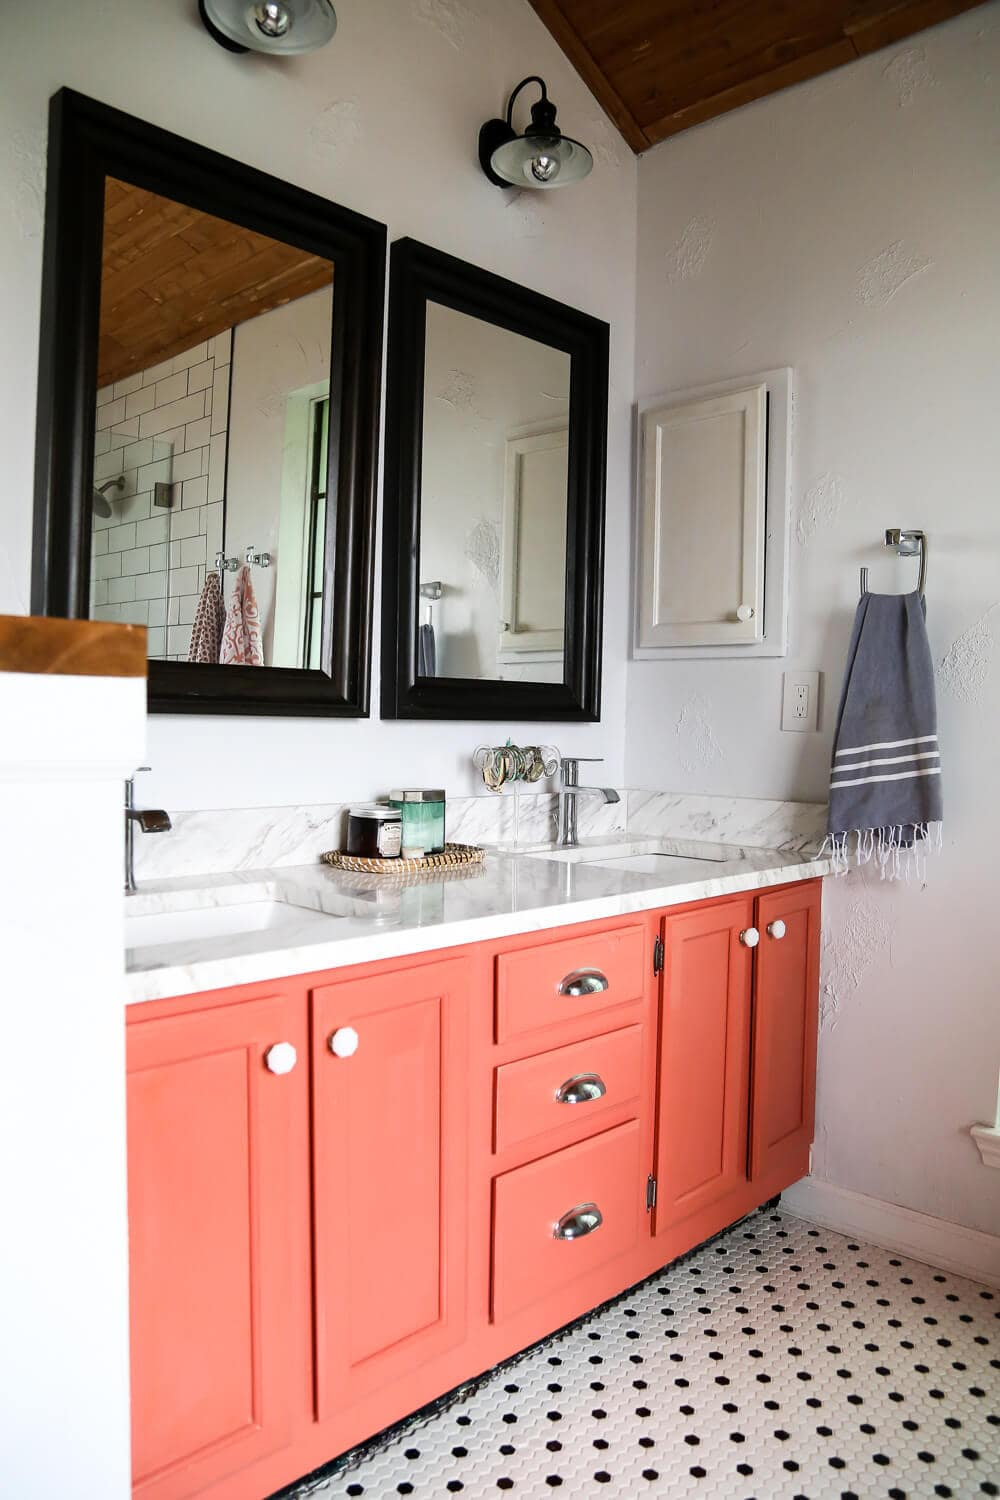 Diy Bathroom Remodel Photos our diy budget bathroom renovation // love & renovations